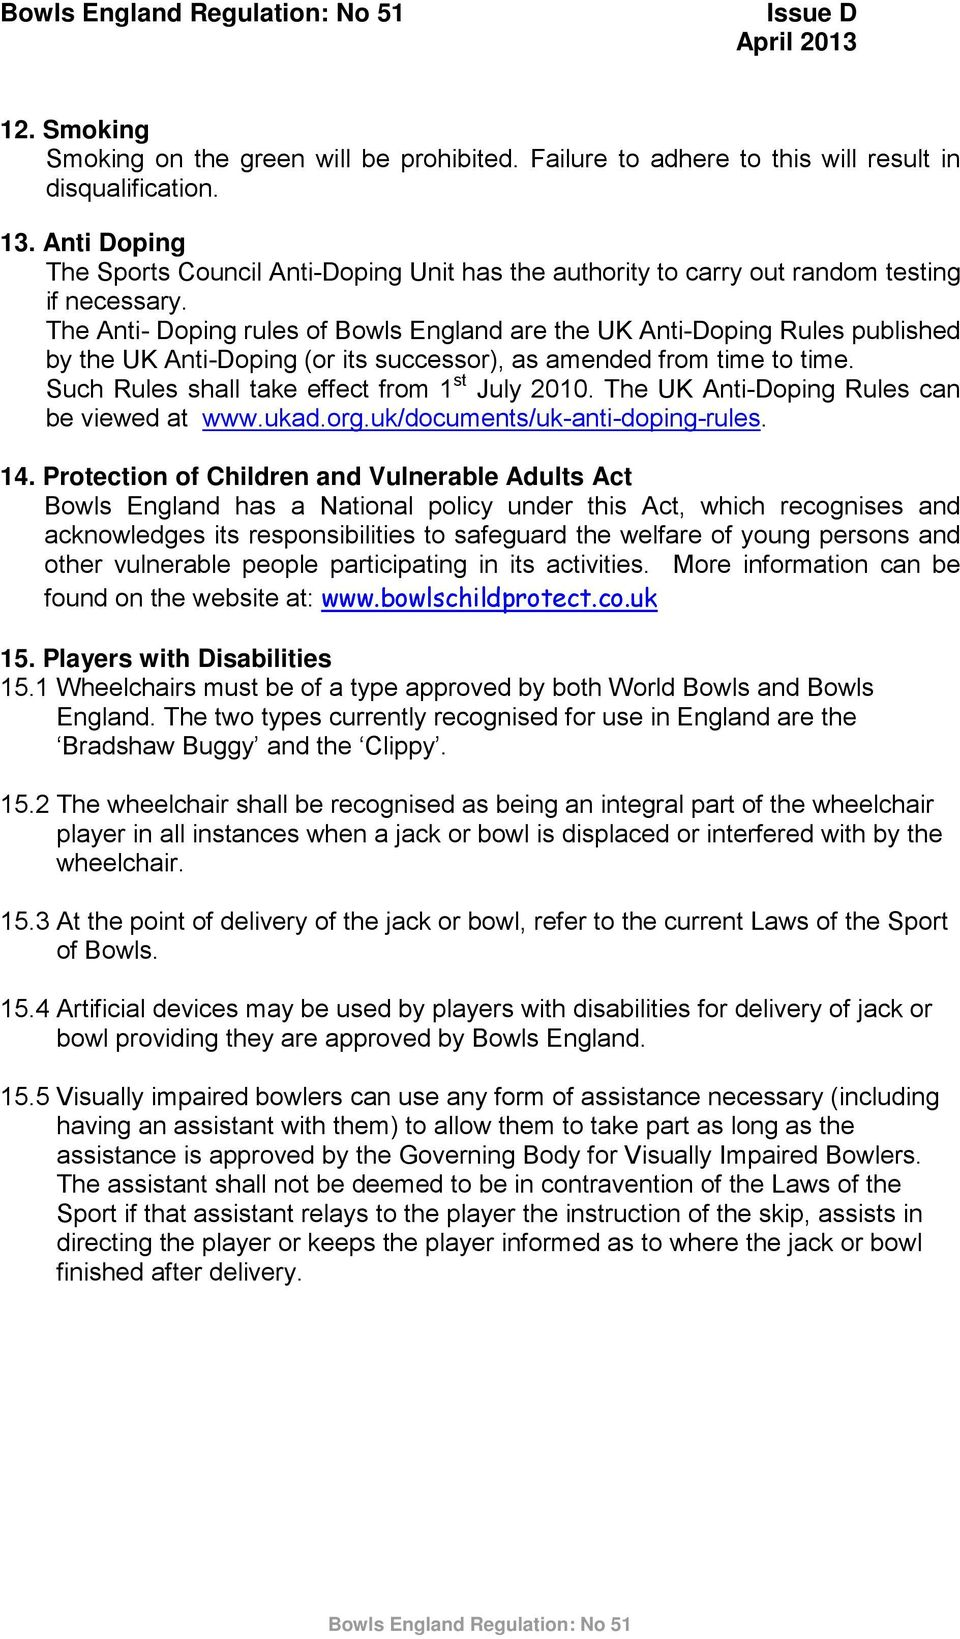 The Anti- Doping rules of Bowls England are the UK Anti-Doping Rules published by the UK Anti-Doping (or its successor), as amended from time to time. Such Rules shall take effect from 1 st July 2010.